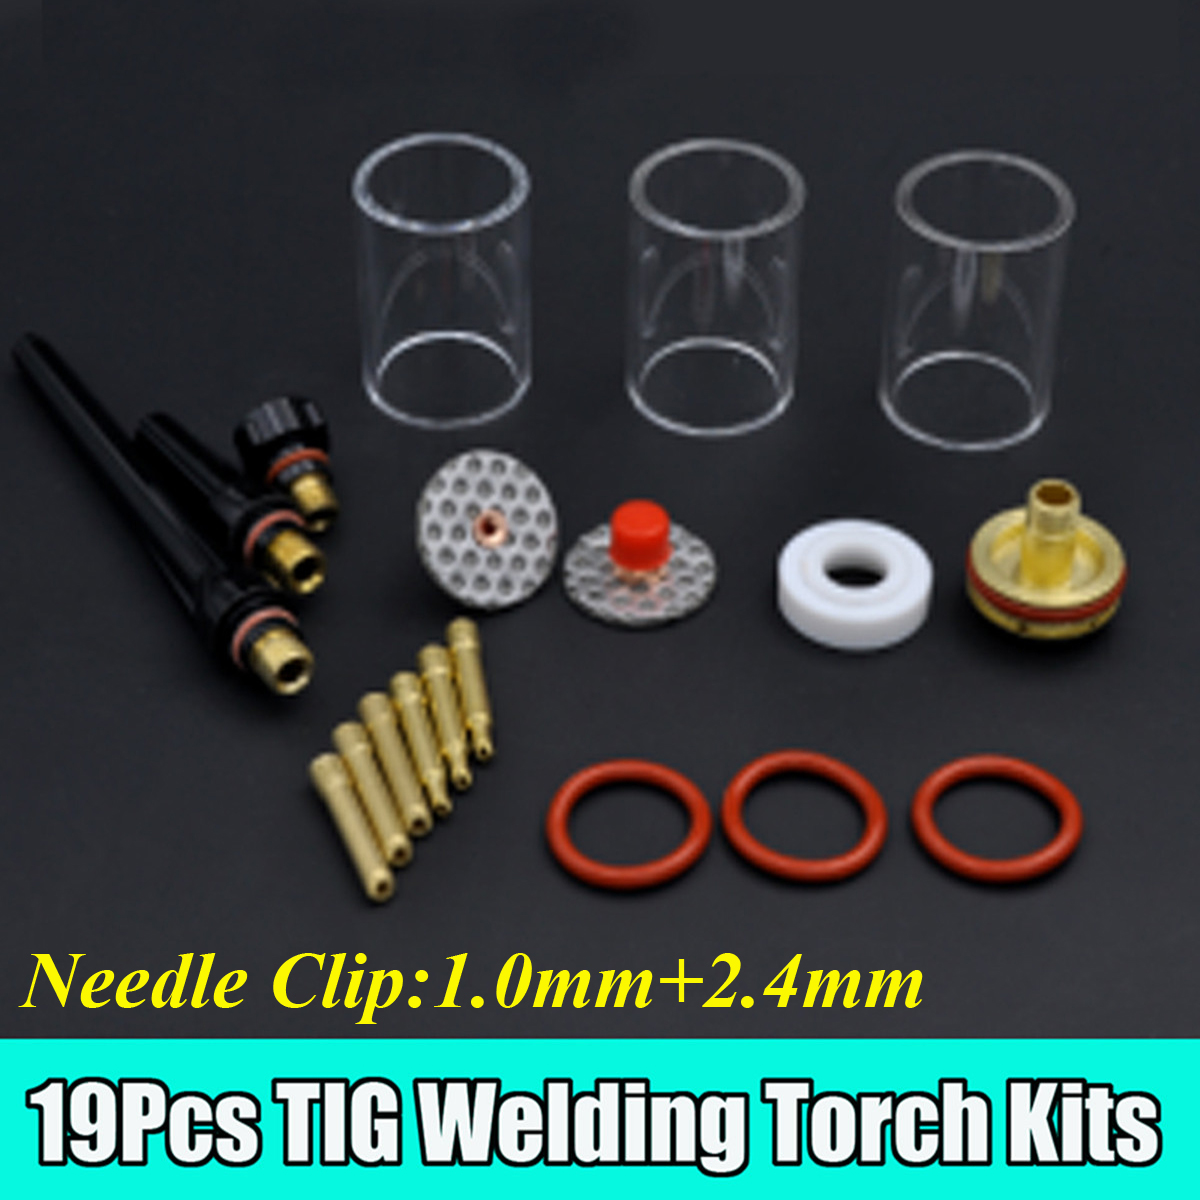 1.0mm+2.4mm 19PCs TIG Welding Torch Kit Tungsten Needle Clip Stubby Collet Body Gas Lens Pyrex Glass Cup for WP-17/18/26 Series 49pcs practical tig welding kit welding torch accessories collet body stubby gas lens 10 pyrex glass cup for wp 17 18 26 mayitr